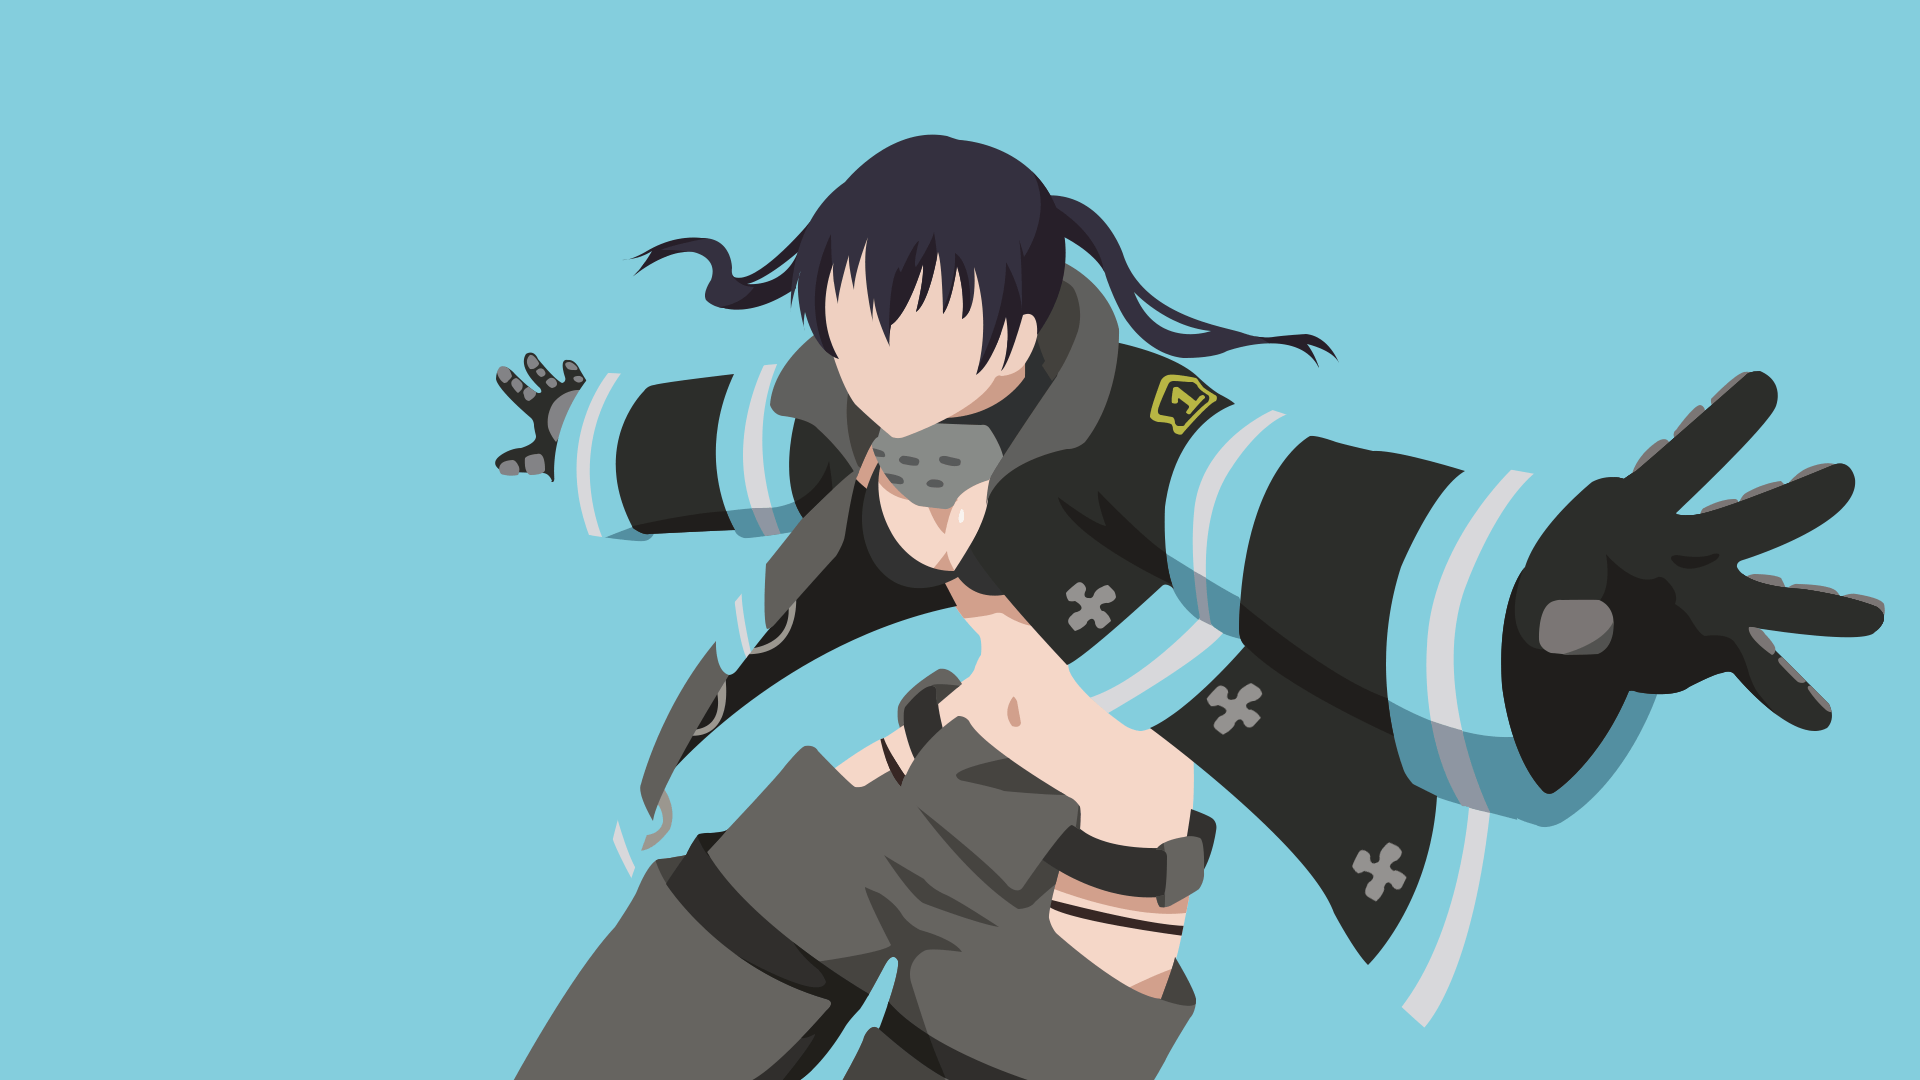 Fire Force Minimalist Wallpapers Wallpaper Cave Check out this fantastic collection of fire force wallpapers, with 38 fire force background images for your desktop, phone or tablet. fire force minimalist wallpapers